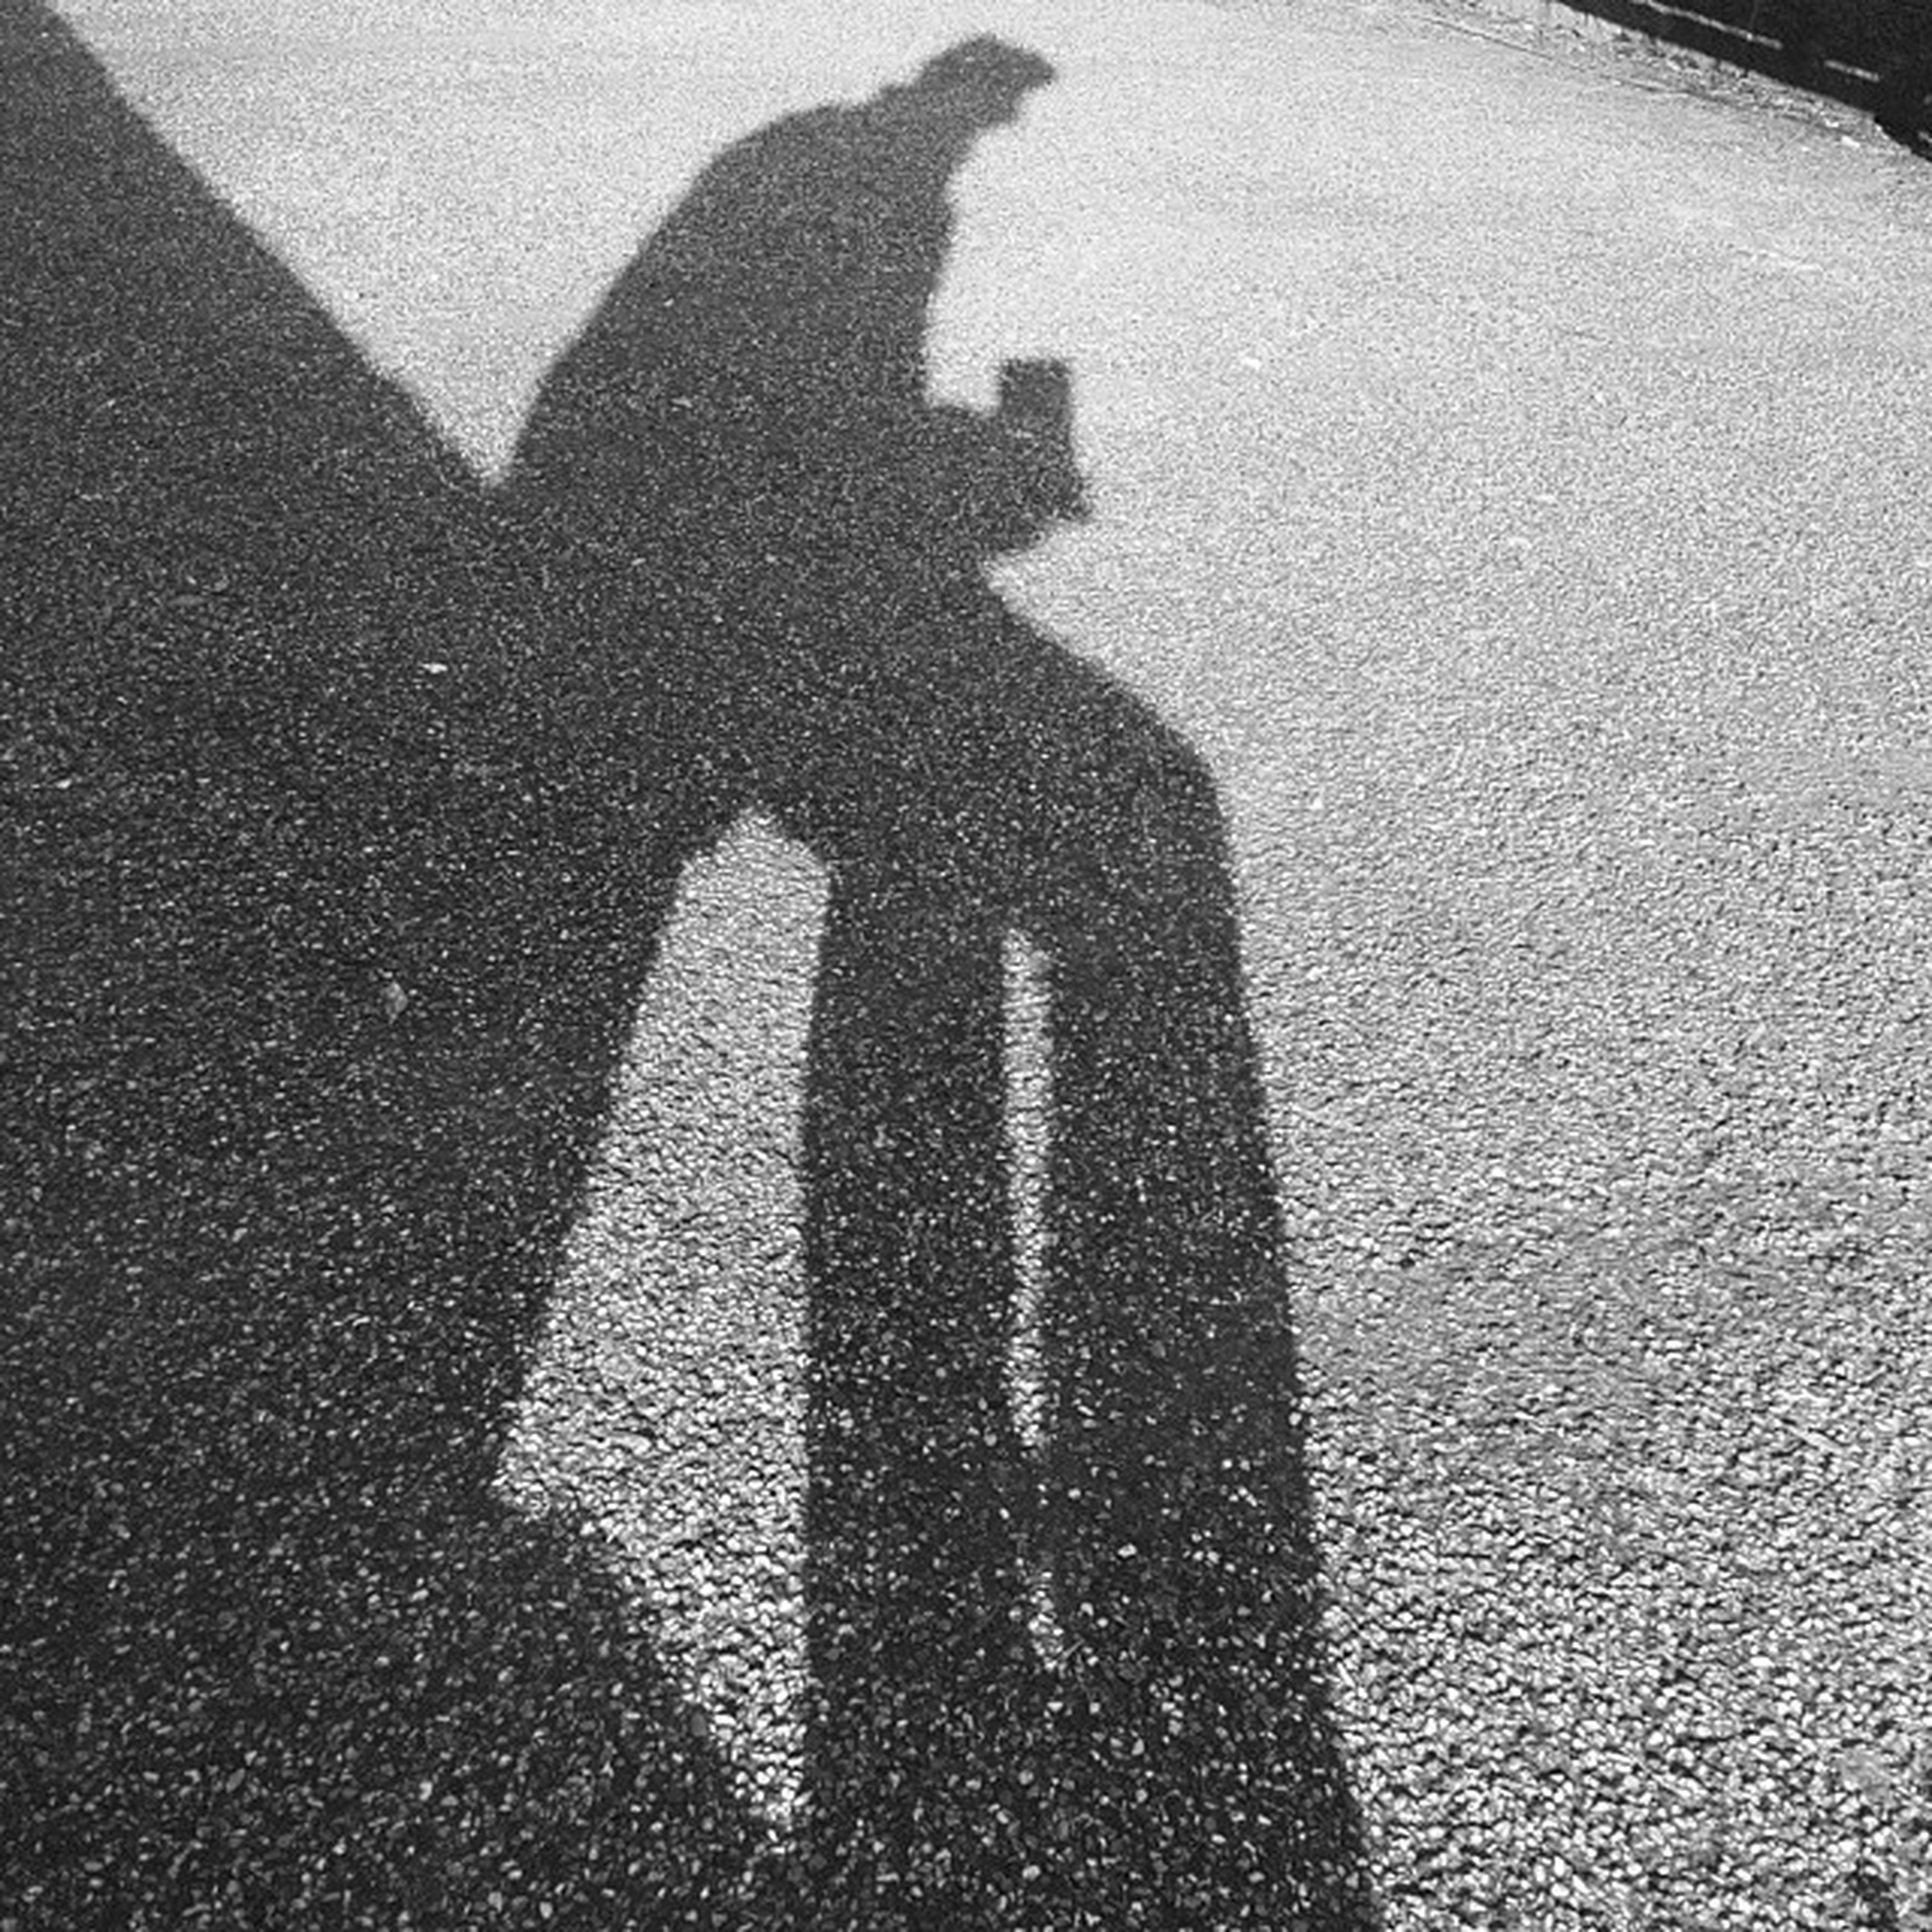 shadow, high angle view, focus on shadow, street, unrecognizable person, sunlight, human representation, communication, lifestyles, road, day, asphalt, leisure activity, outdoors, men, road marking, textured, standing